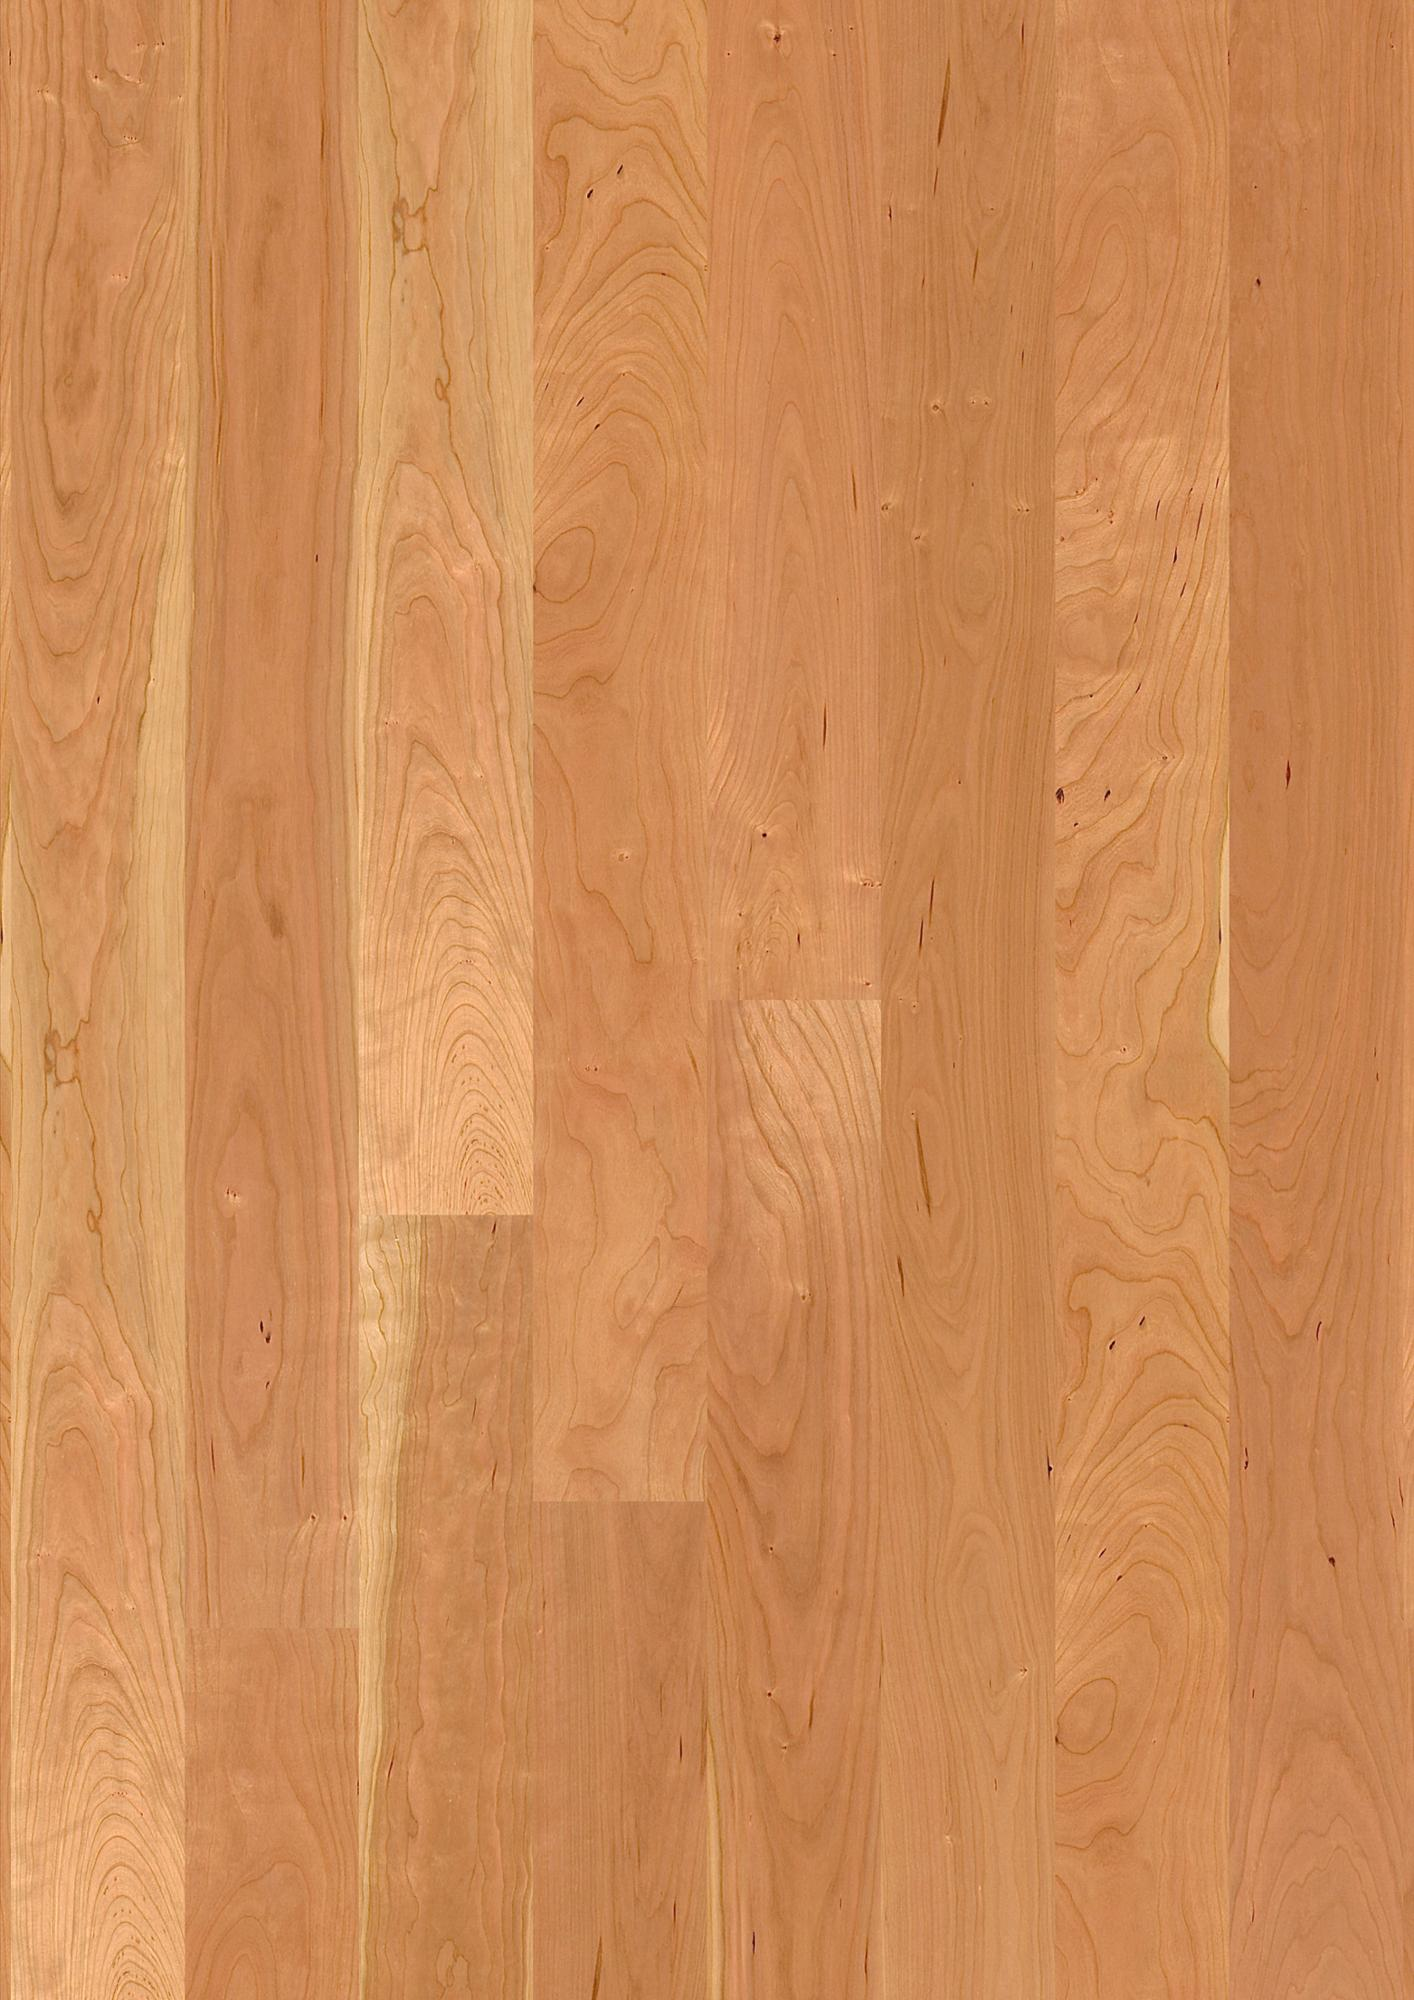 Cherry american Andante, Plank 138, Live Natural oil, unbrushed, square edged, 14x138x2200mm